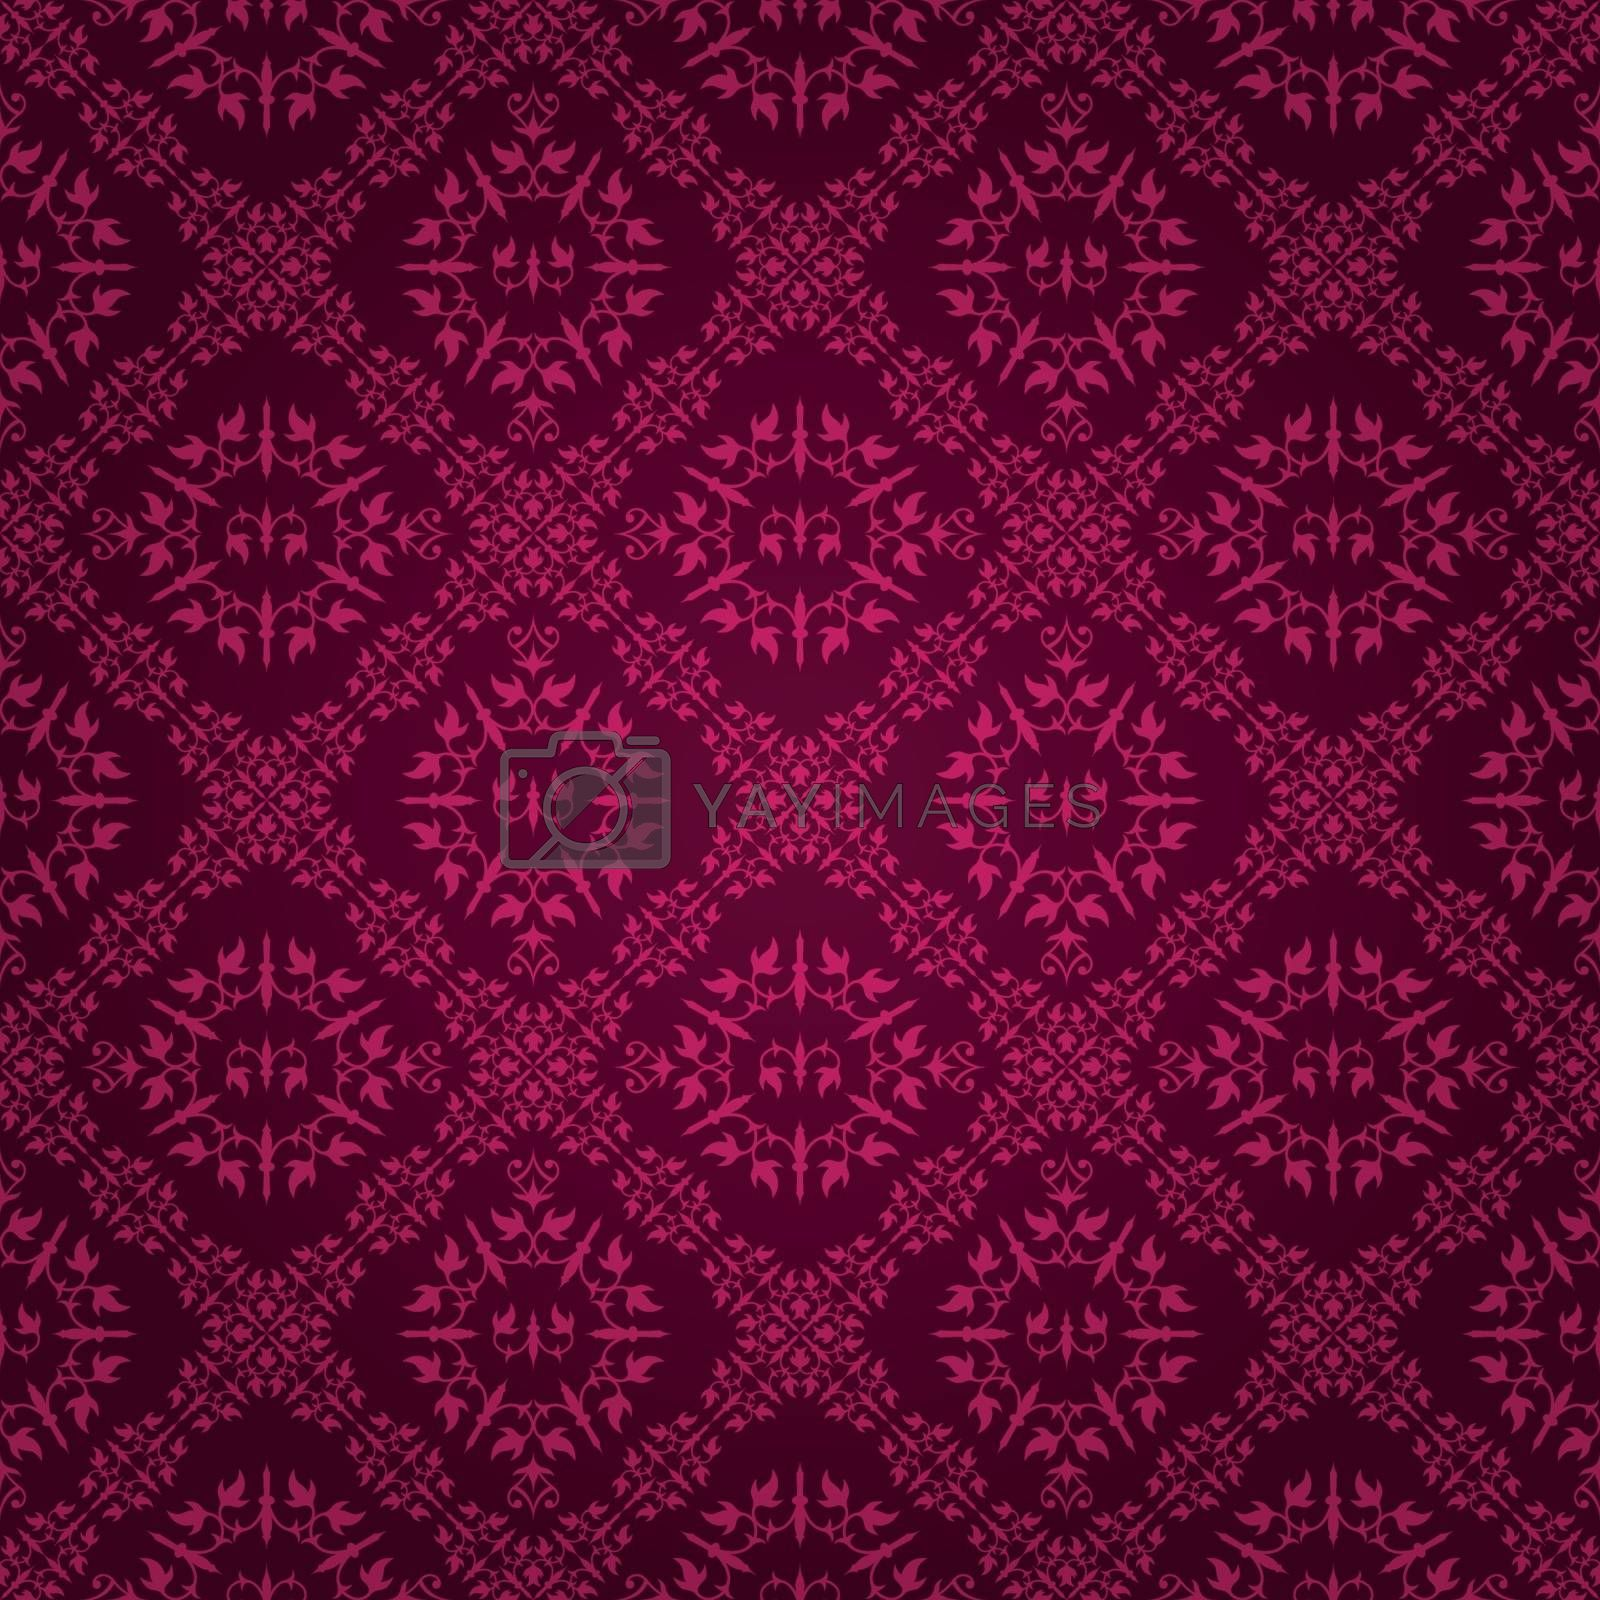 Beautiful dark purple vintage tile wallpaper design with floral elements, eps8 vector